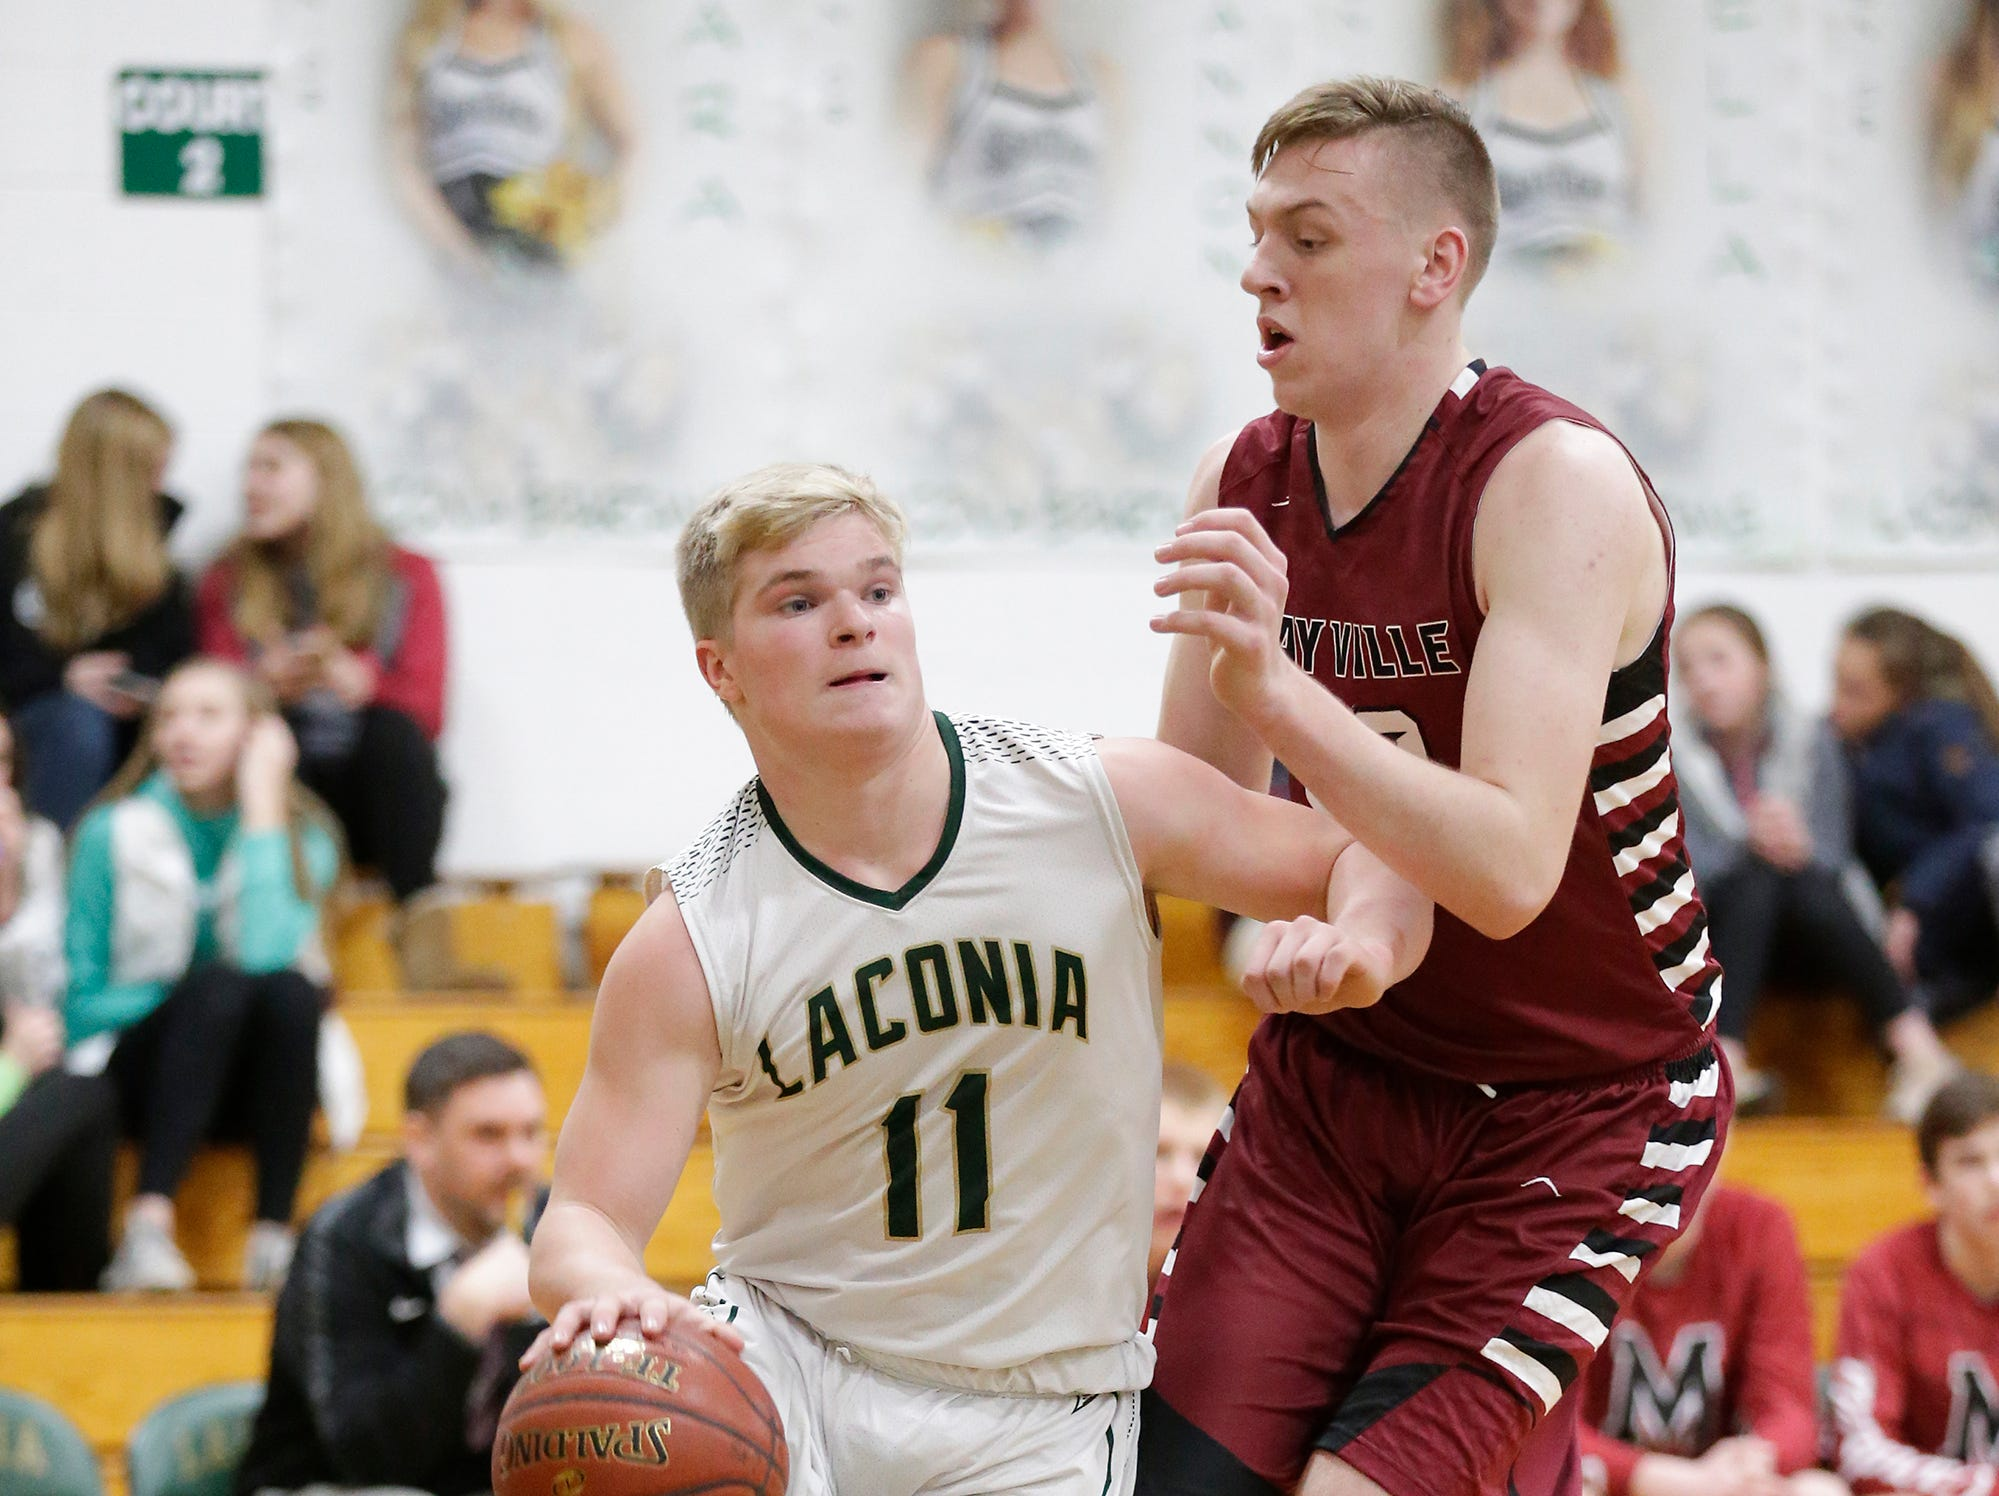 Laconia High School boys basketball's Eli Leonard works around Mayville High School's Logan Arroyo during their game Friday, January 25, 2019 in Rosendale. Laconia won the game 80-54. Doug Raflik/USA TODAY NETWORK-Wisconsin